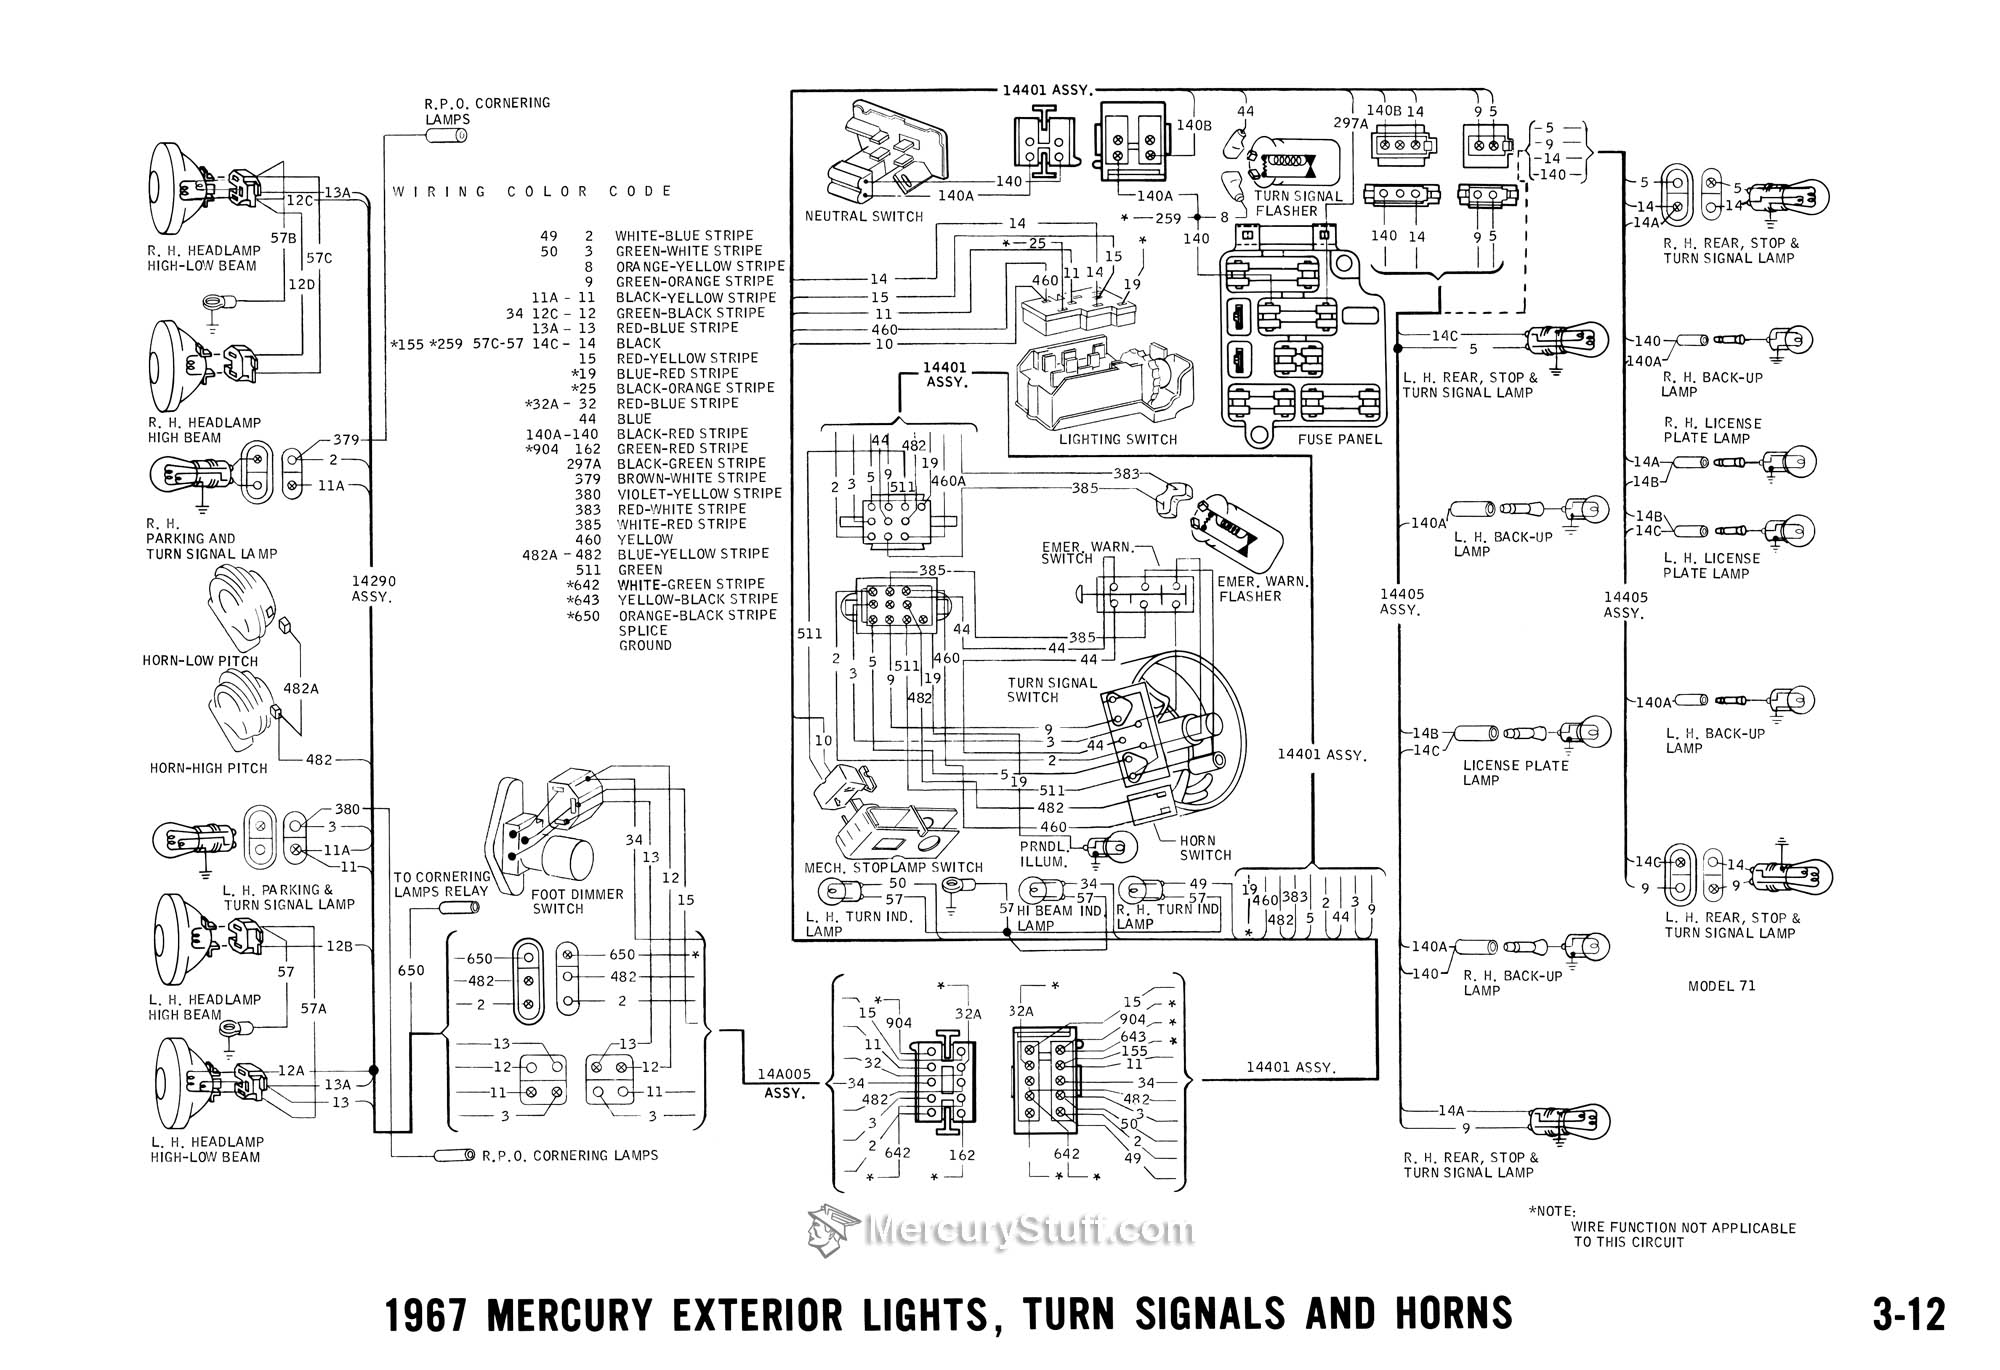 1967 mercury exterior lights turn signals horns wiring diagram 2006 mercury grand marquis the wiring diagram mercury 14 pin wiring harness diagram at webbmarketing.co